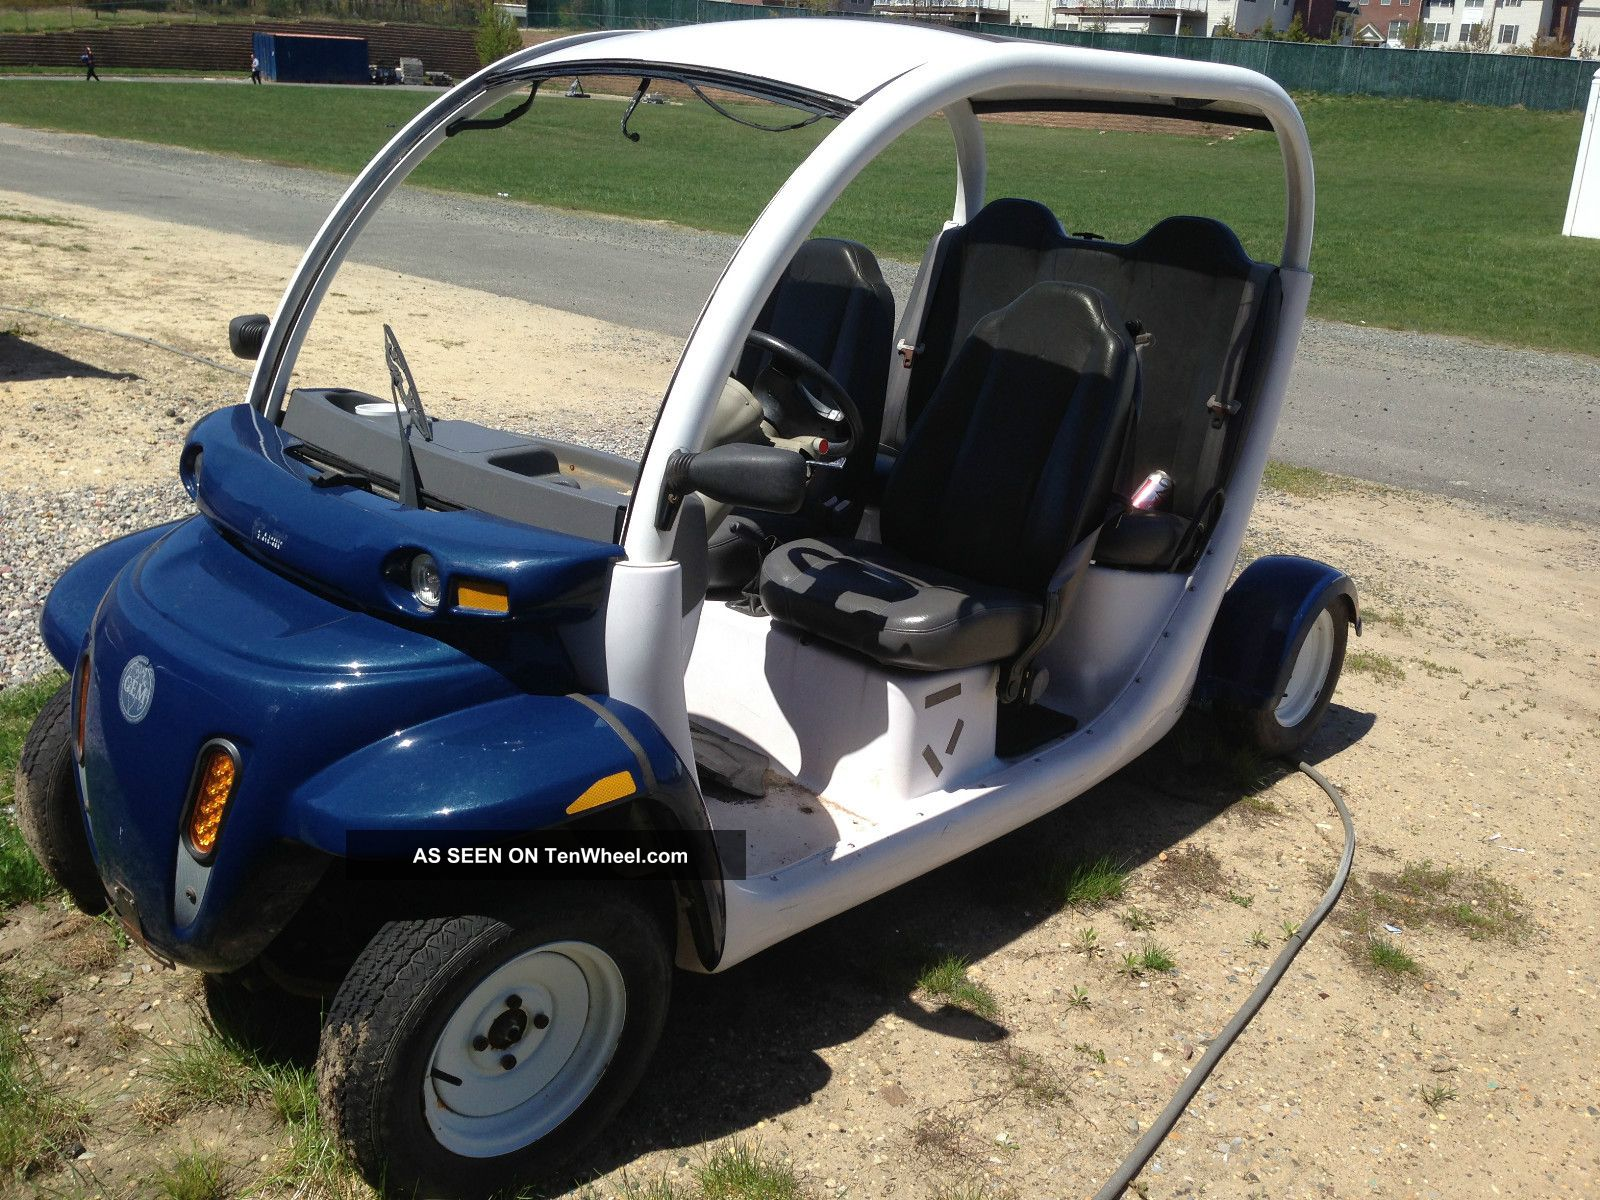 ... 2002 Gem E825 Car Lsv Electric Vehicle Golf Cart Other Makes photo 2 ...